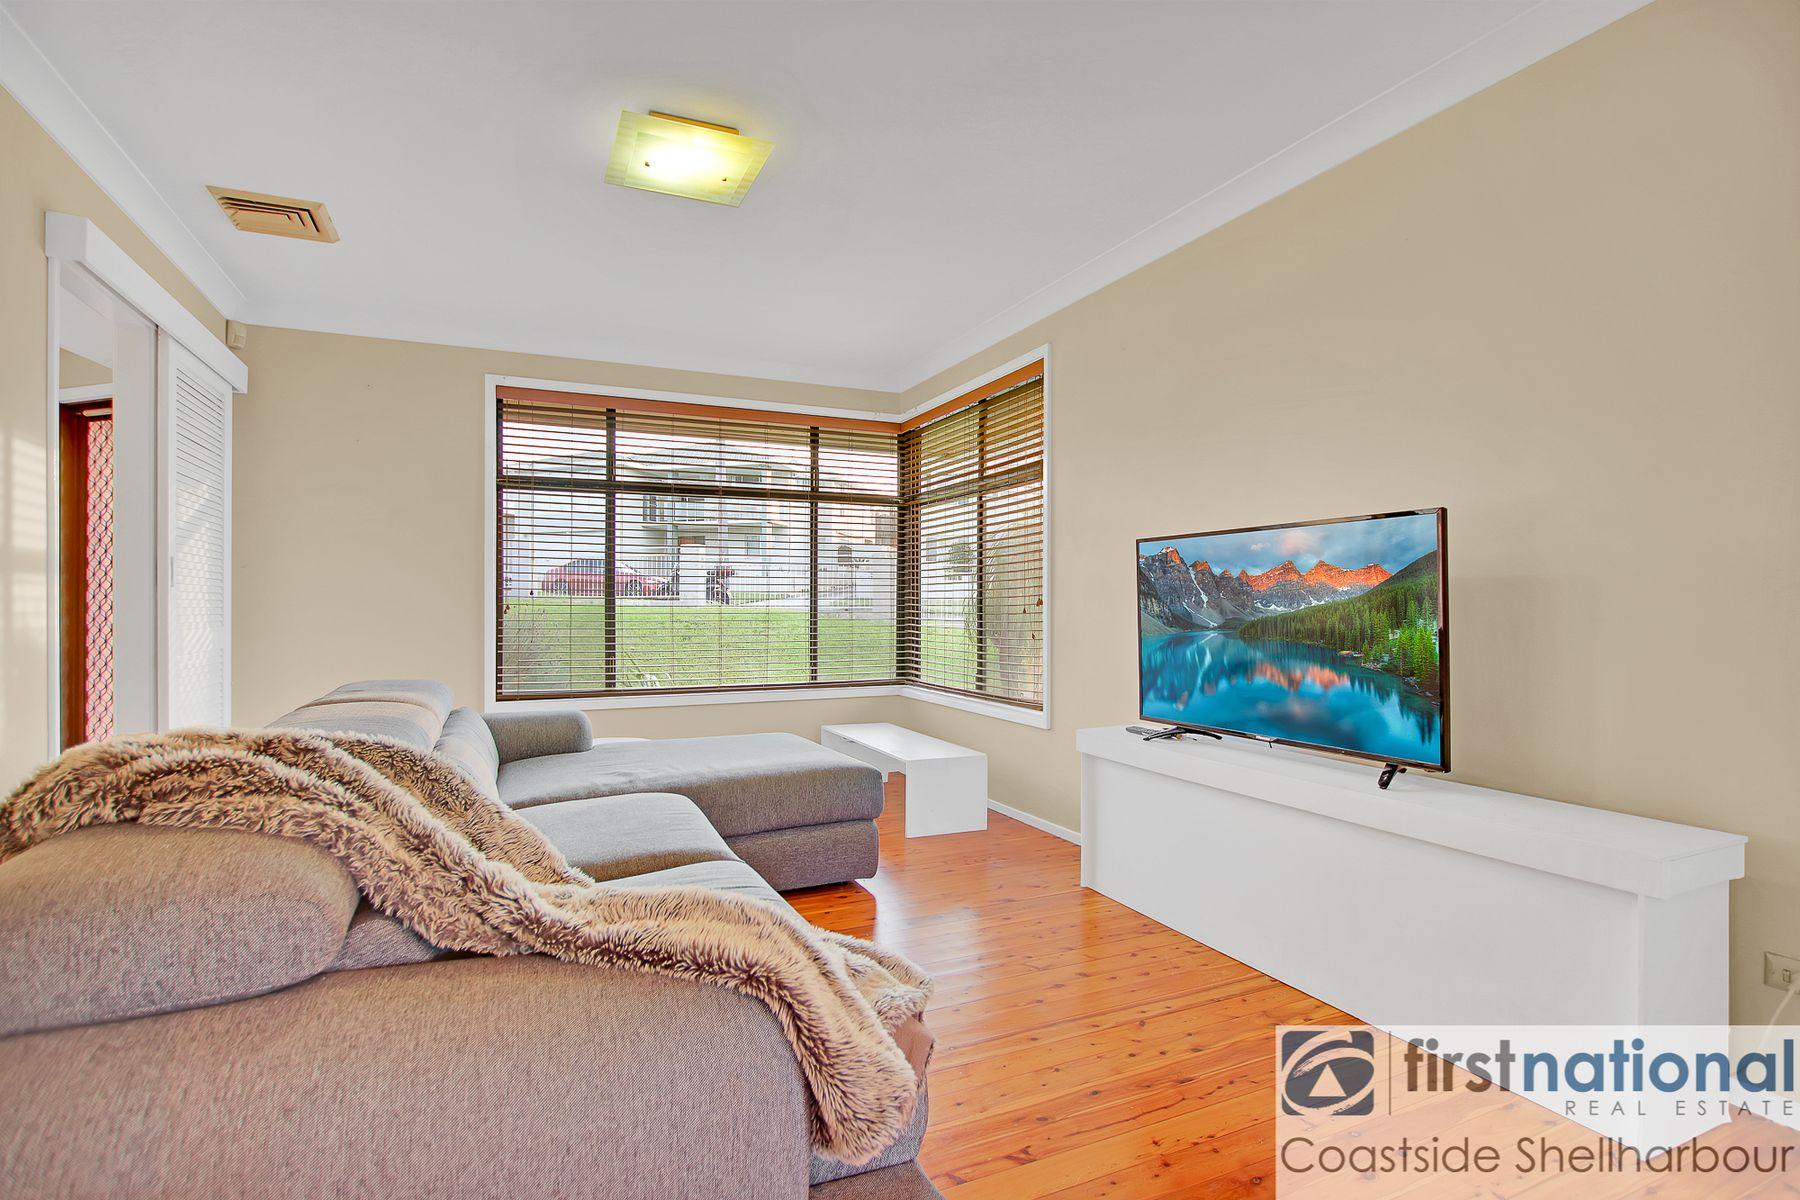 97 The Kingsway, Barrack Heights, NSW 2528